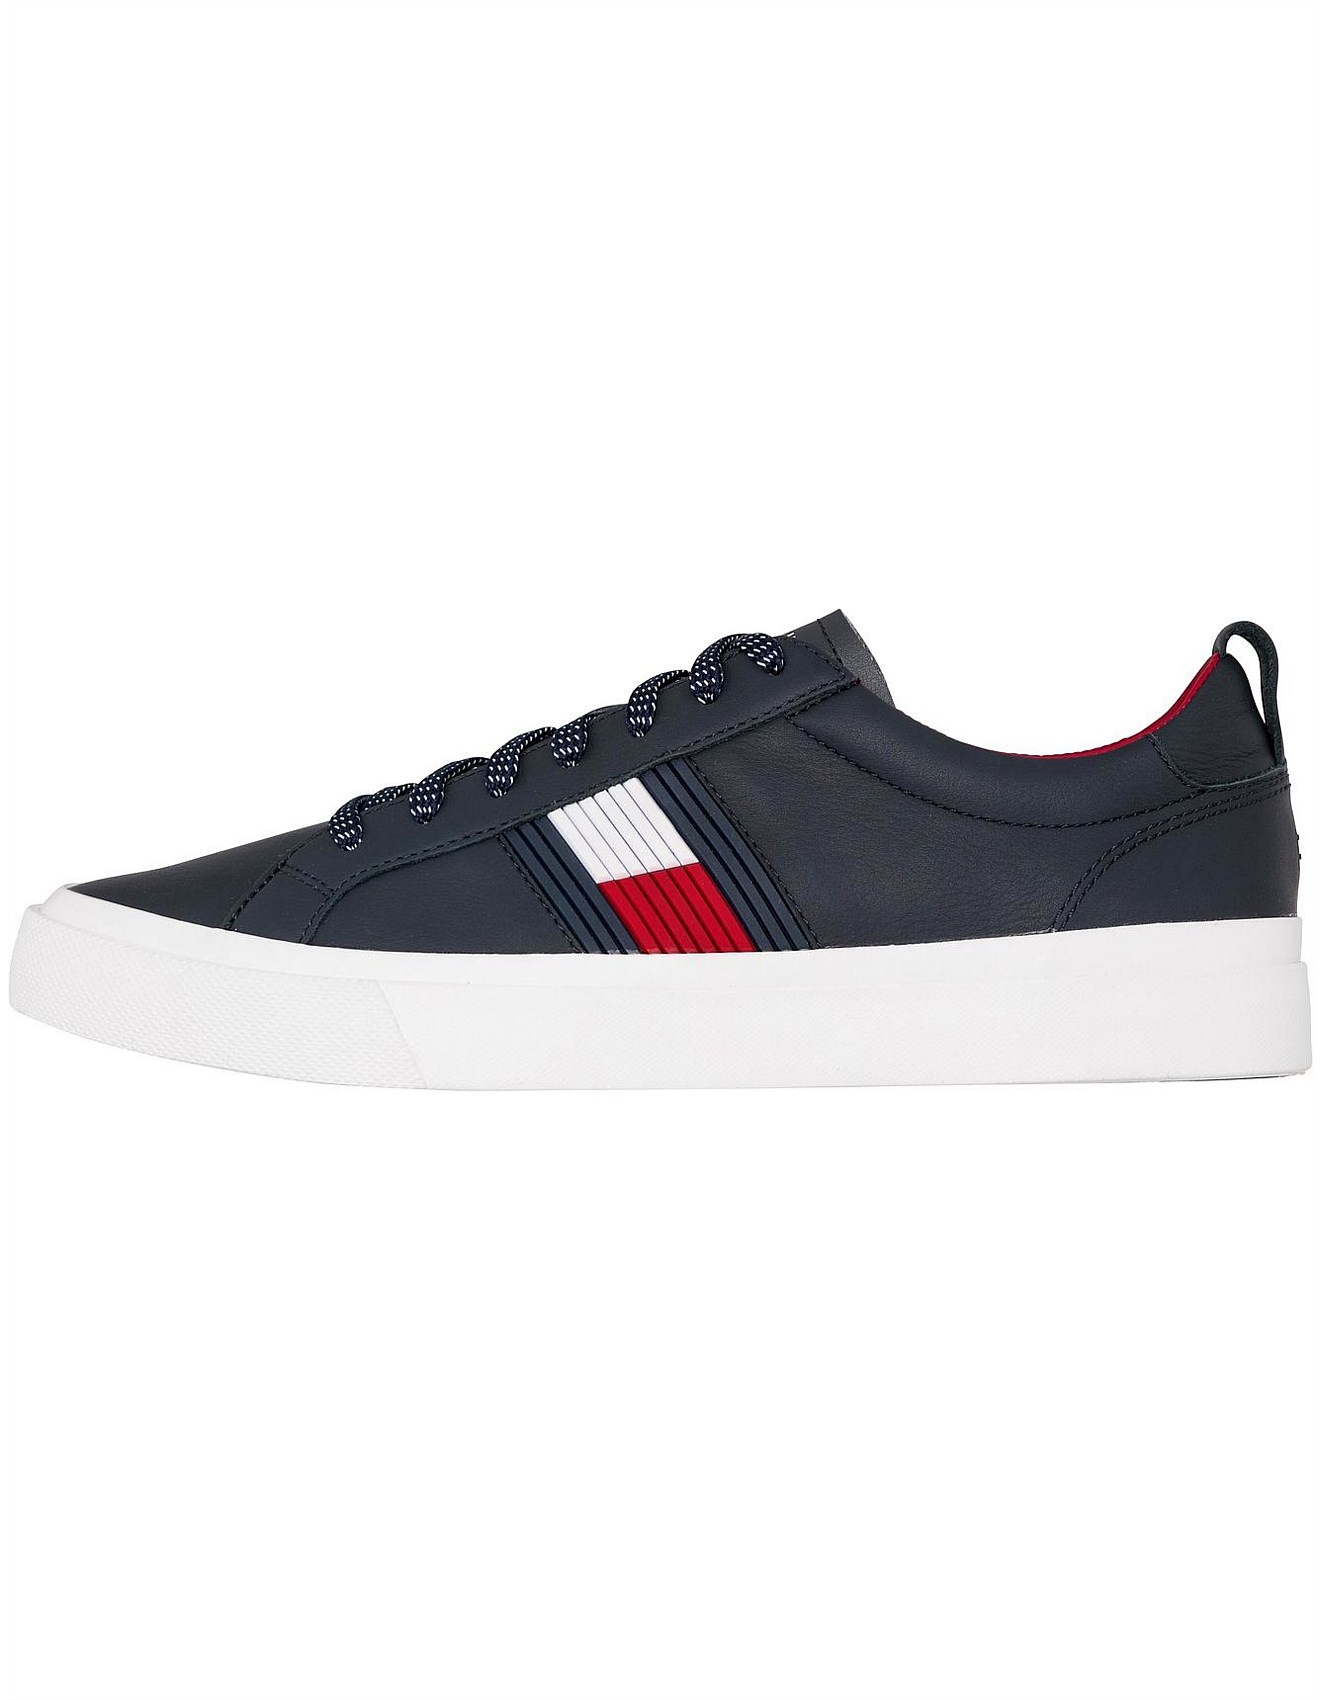 abf869a4f5b162 FLAG DETAIL LEATHER SNEAKER. 1. Zoom. Tommy Hilfiger